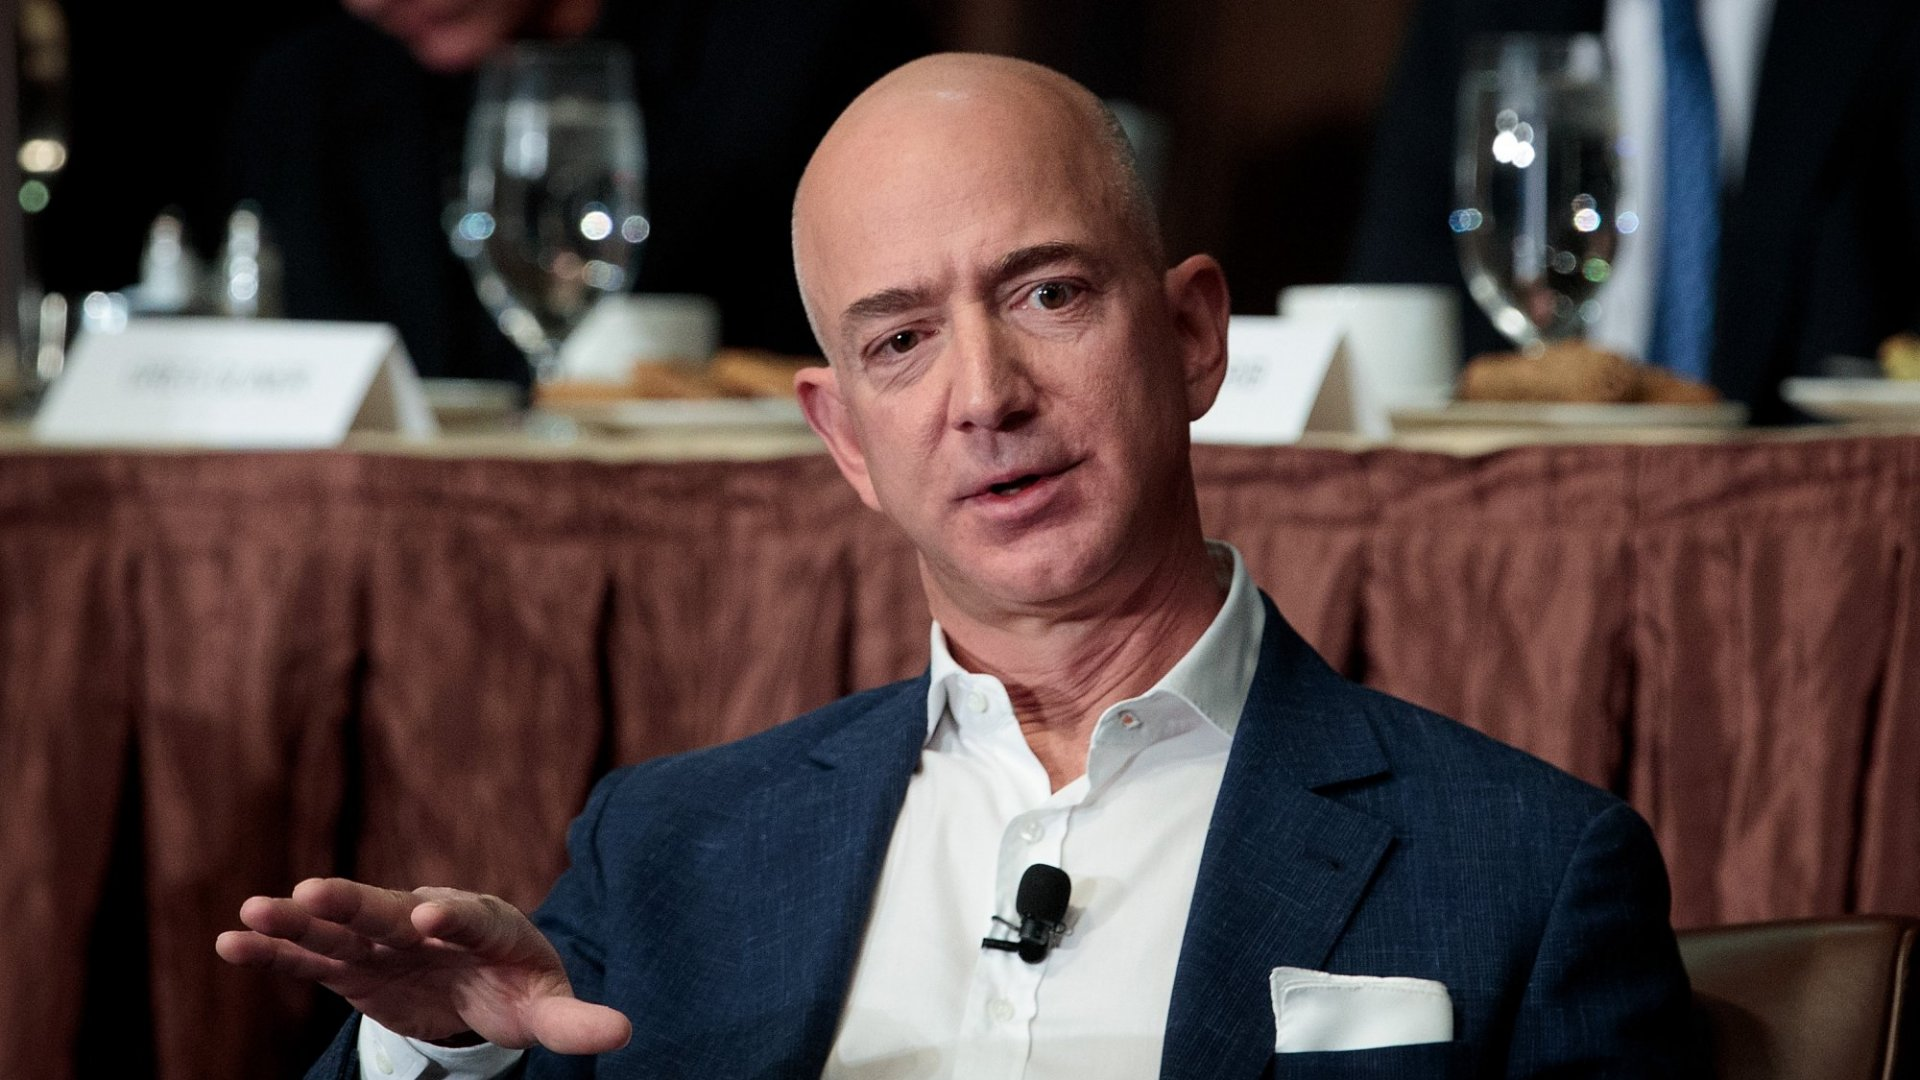 Amazon CEO Jeff Bezos Made These 8 Predictions 20 Years Ago That Were Right on the Money